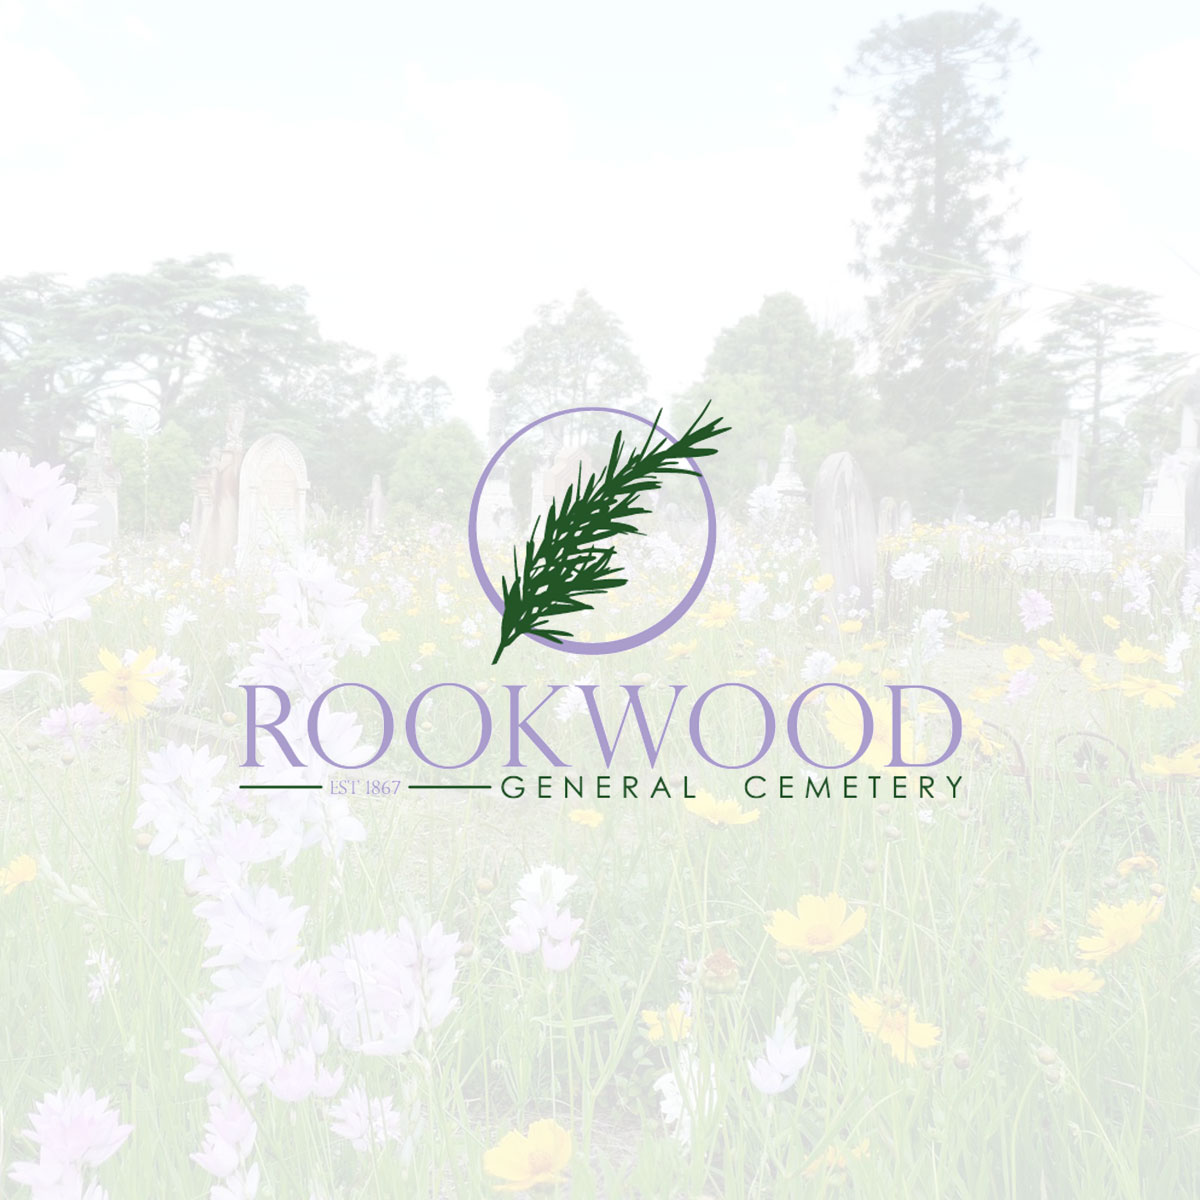 Frequently Asked Questions - Rookwood General Cemetery